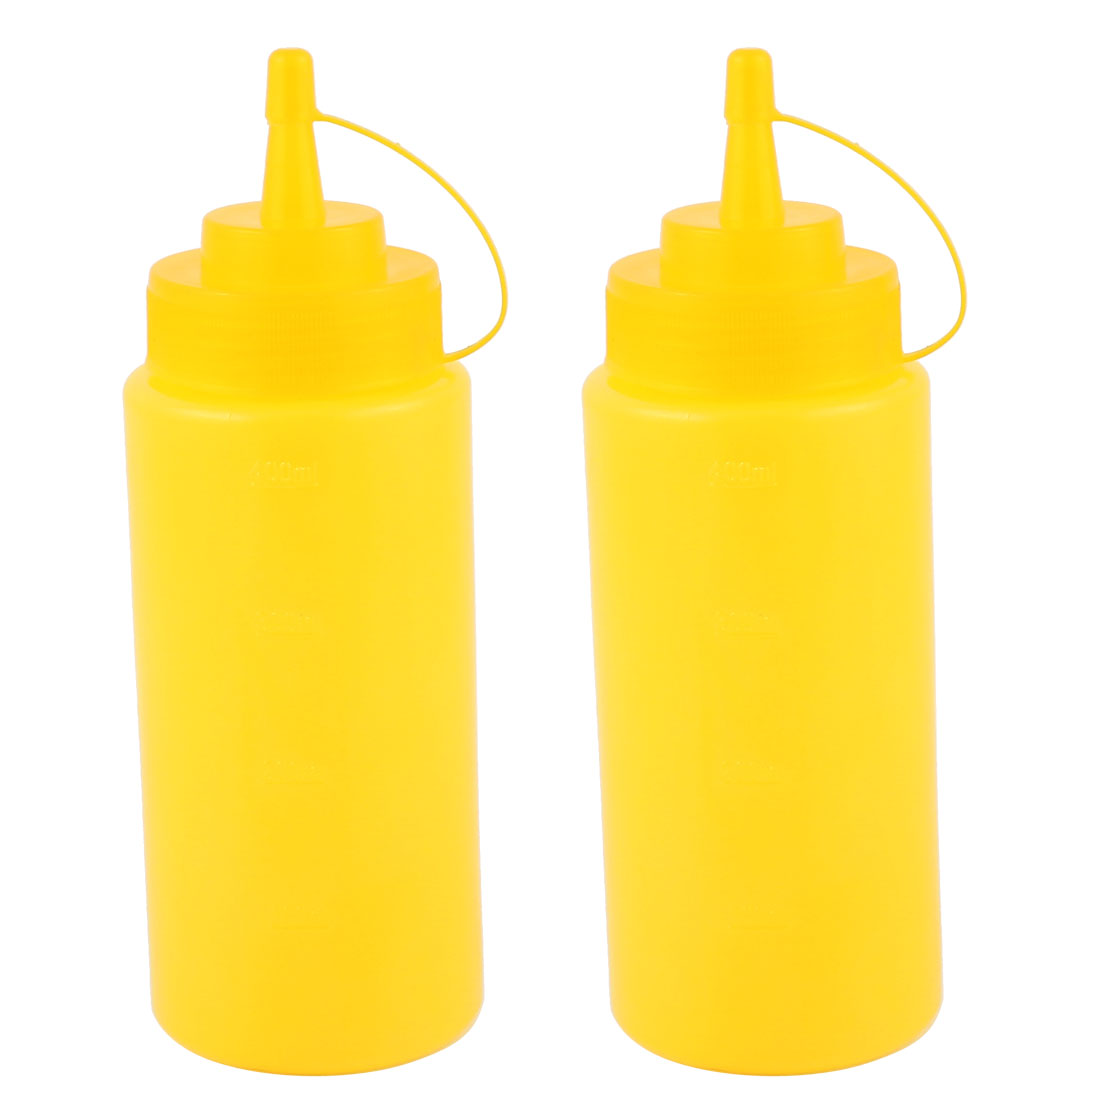 2Pcs 400ml 16oz Kitchen Food Squeeze Bottles Condiment Ketchup Mustard Oil Salt by